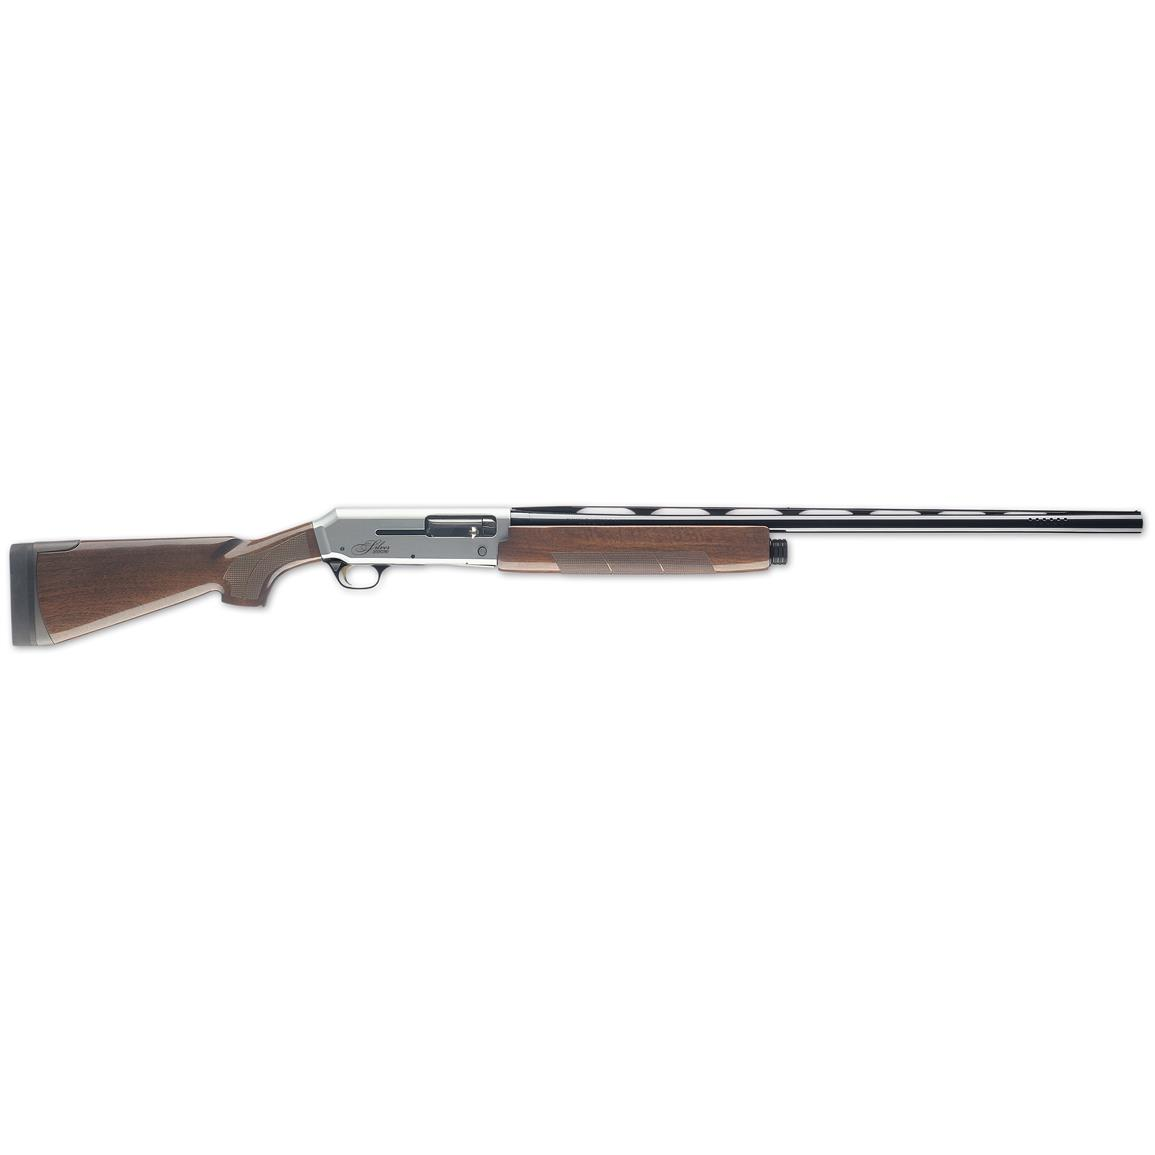 Browning Silver Sporting, Semi-automatic, 12 Gauge, 011377427, 023614065234